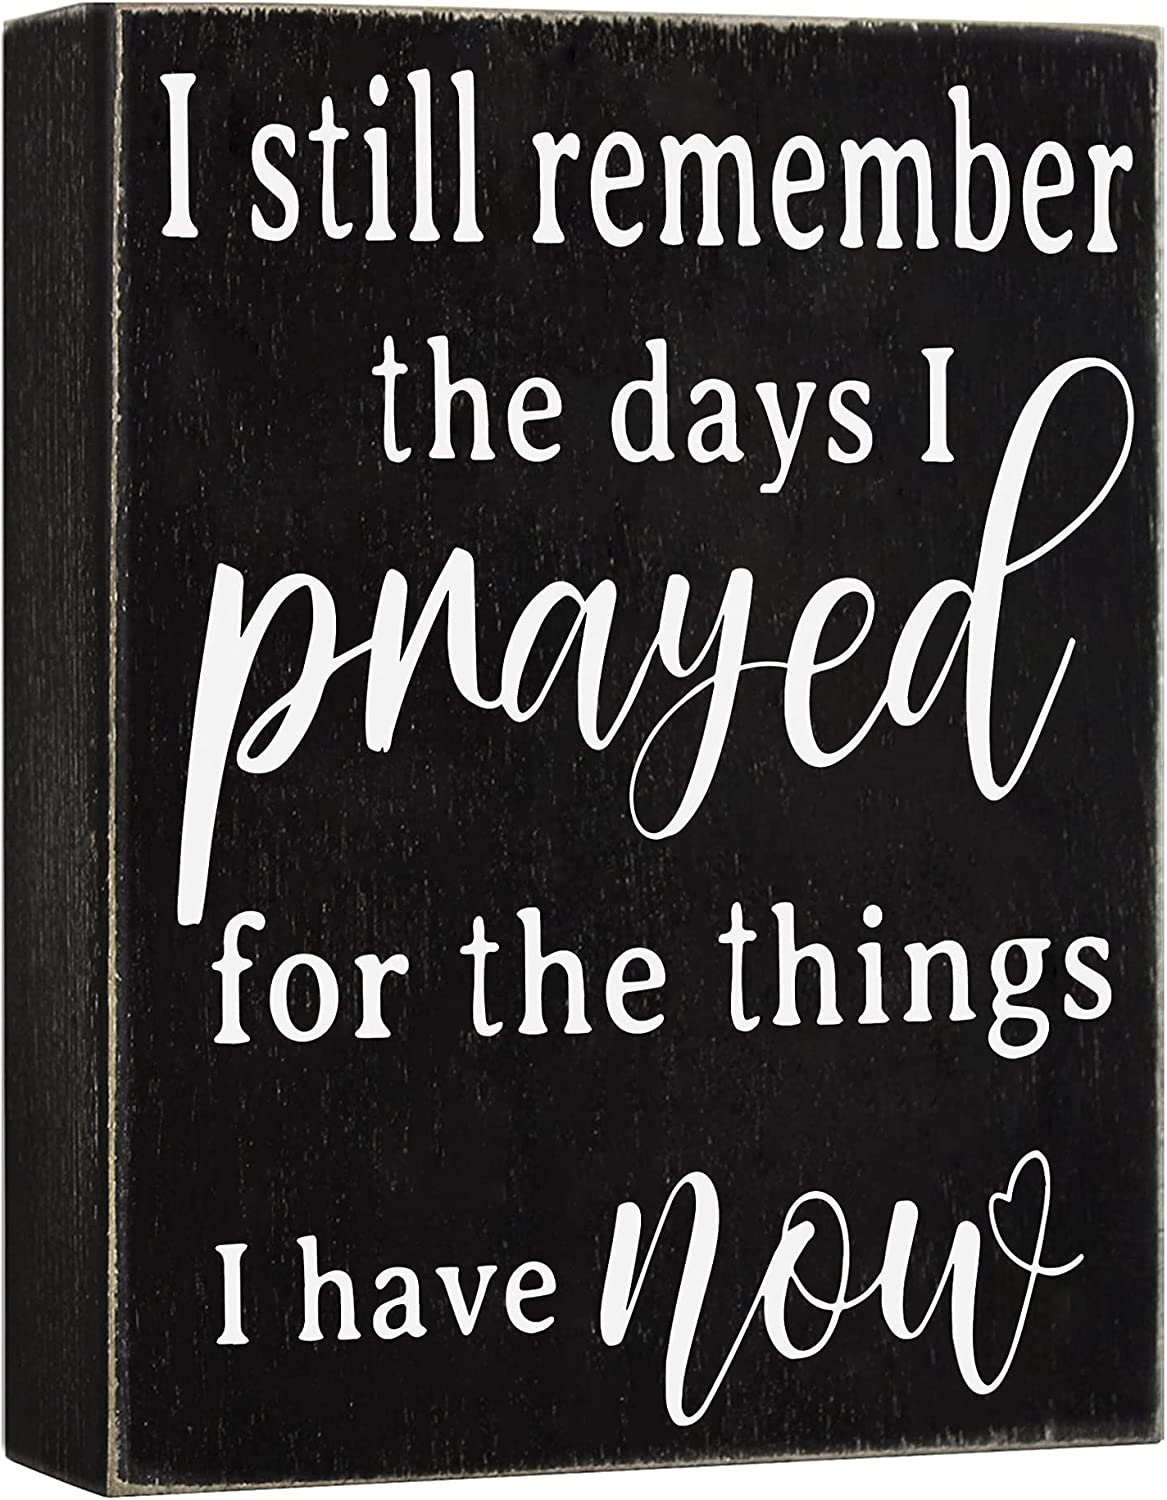 Cocomong Modern Farmhouse Decorations for Living Room, I Still Remember The Days I Prayed, Farmhouse Shelf Decor Accents, Wall Decoration for Home, Wooden House Decor Sign 6x8, Home Gifts for Women